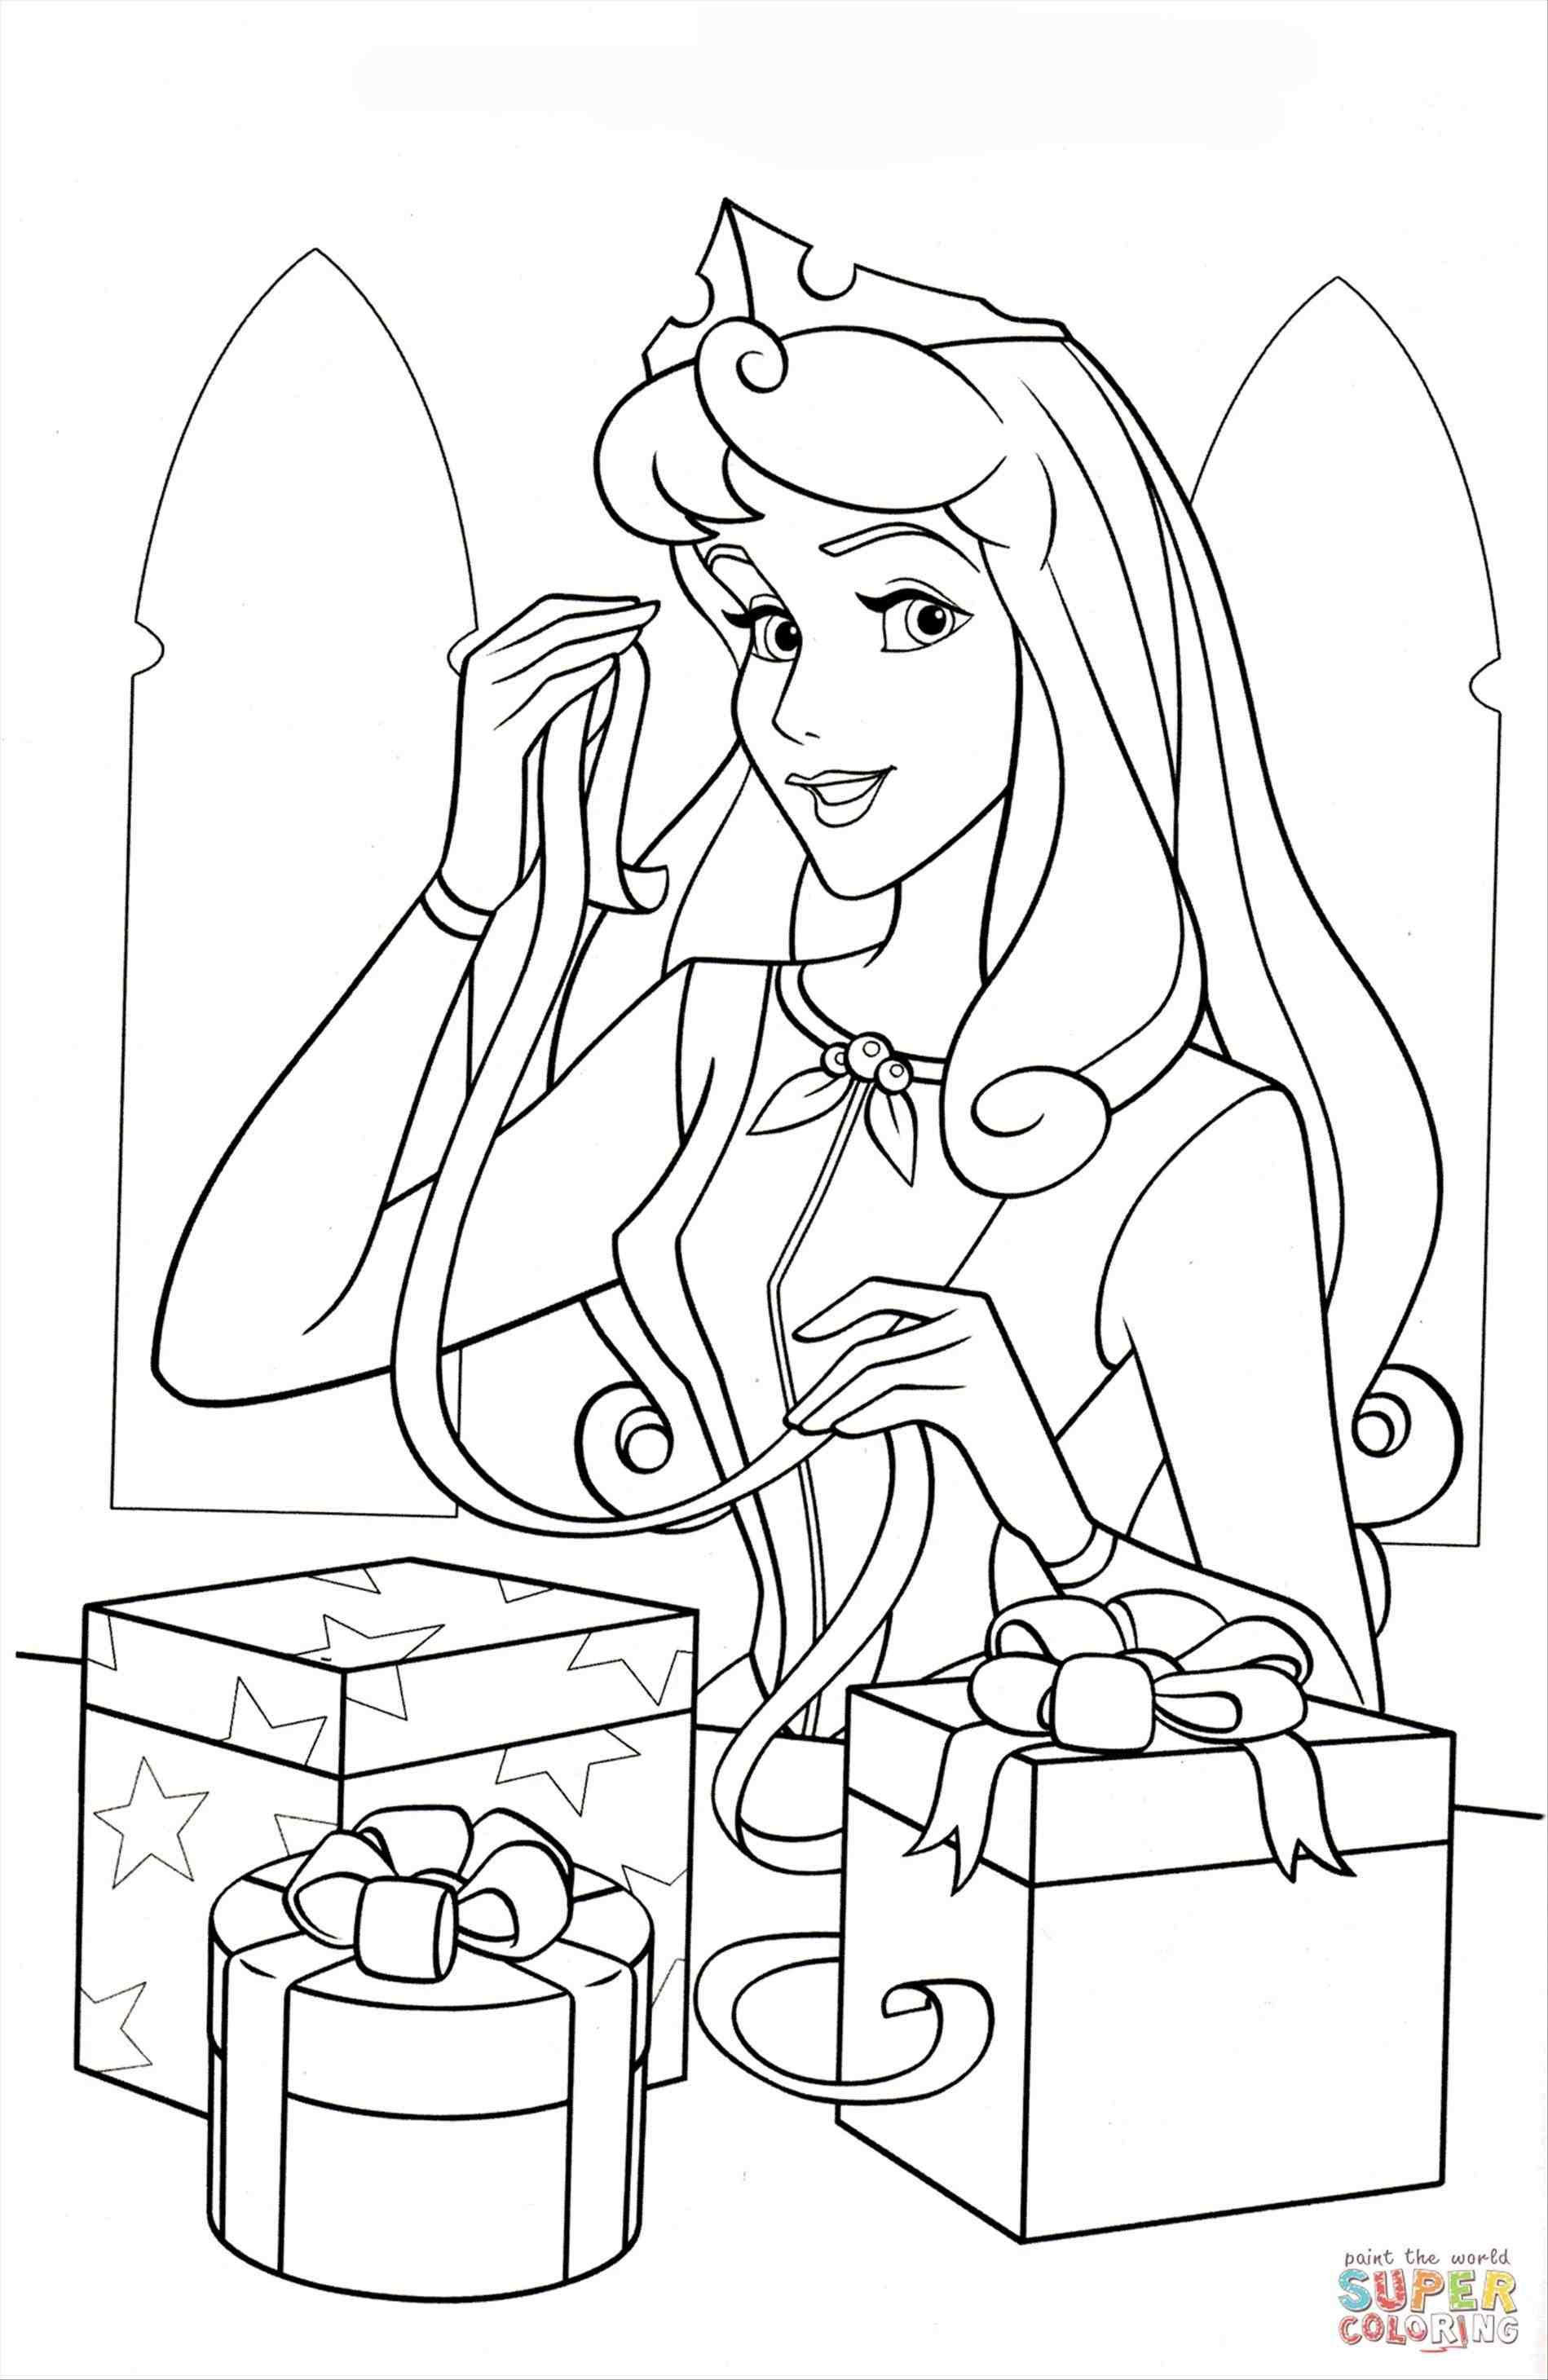 New Post Disney Princess Merry Christmas Coloring Pages Interesting Visit Xmast S Disney Princess Coloring Pages Princess Coloring Pages Disney Princess Colors